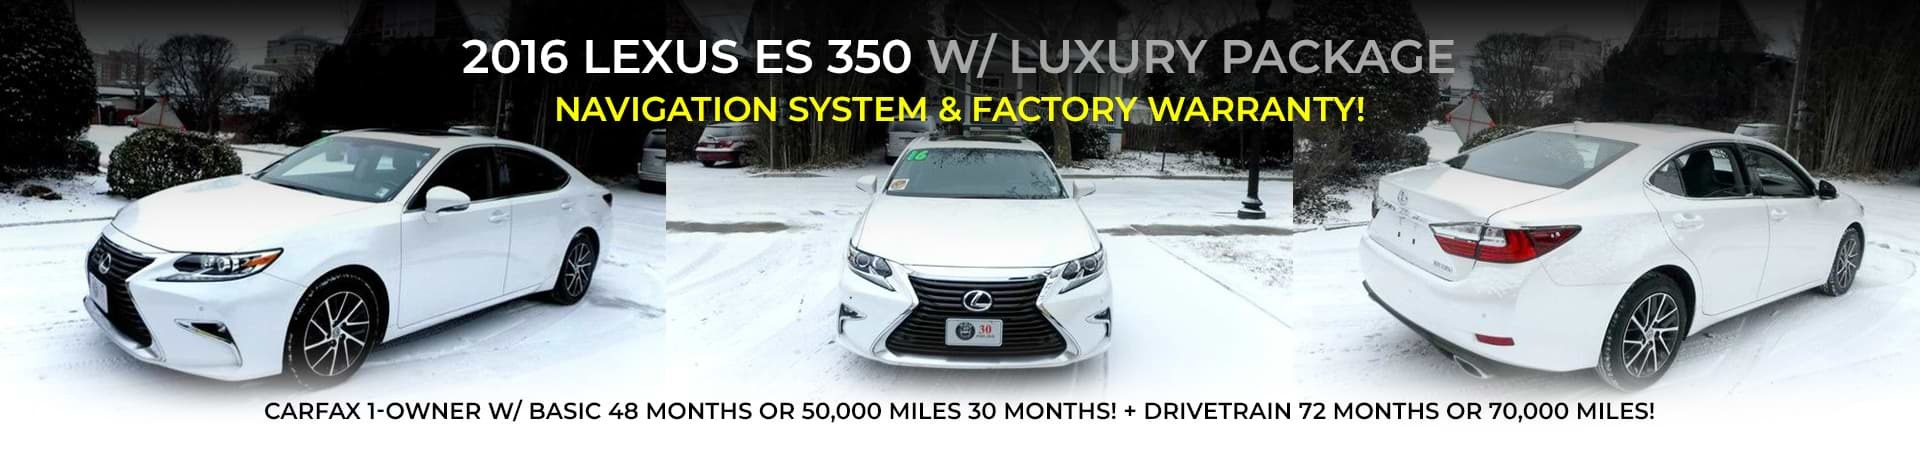 2016 Lexus ES 350 at WBM of Arlington